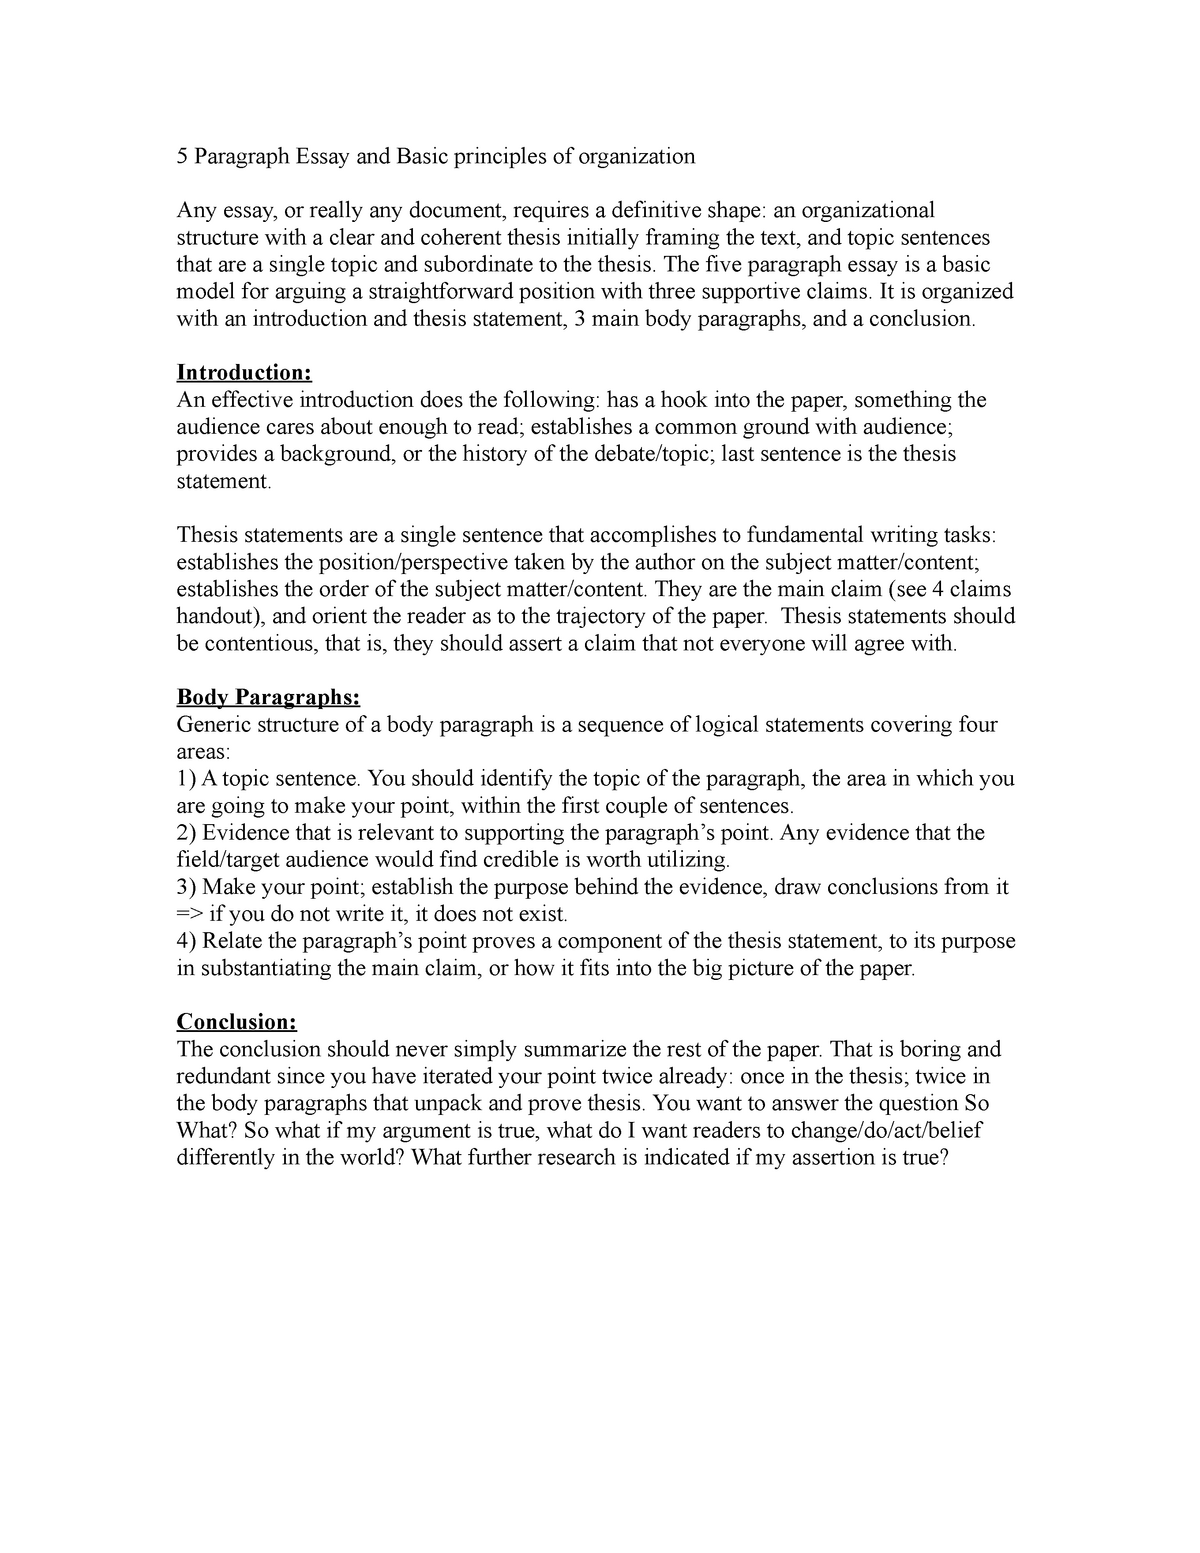 5 paragraph essay info  i don't know what to write here